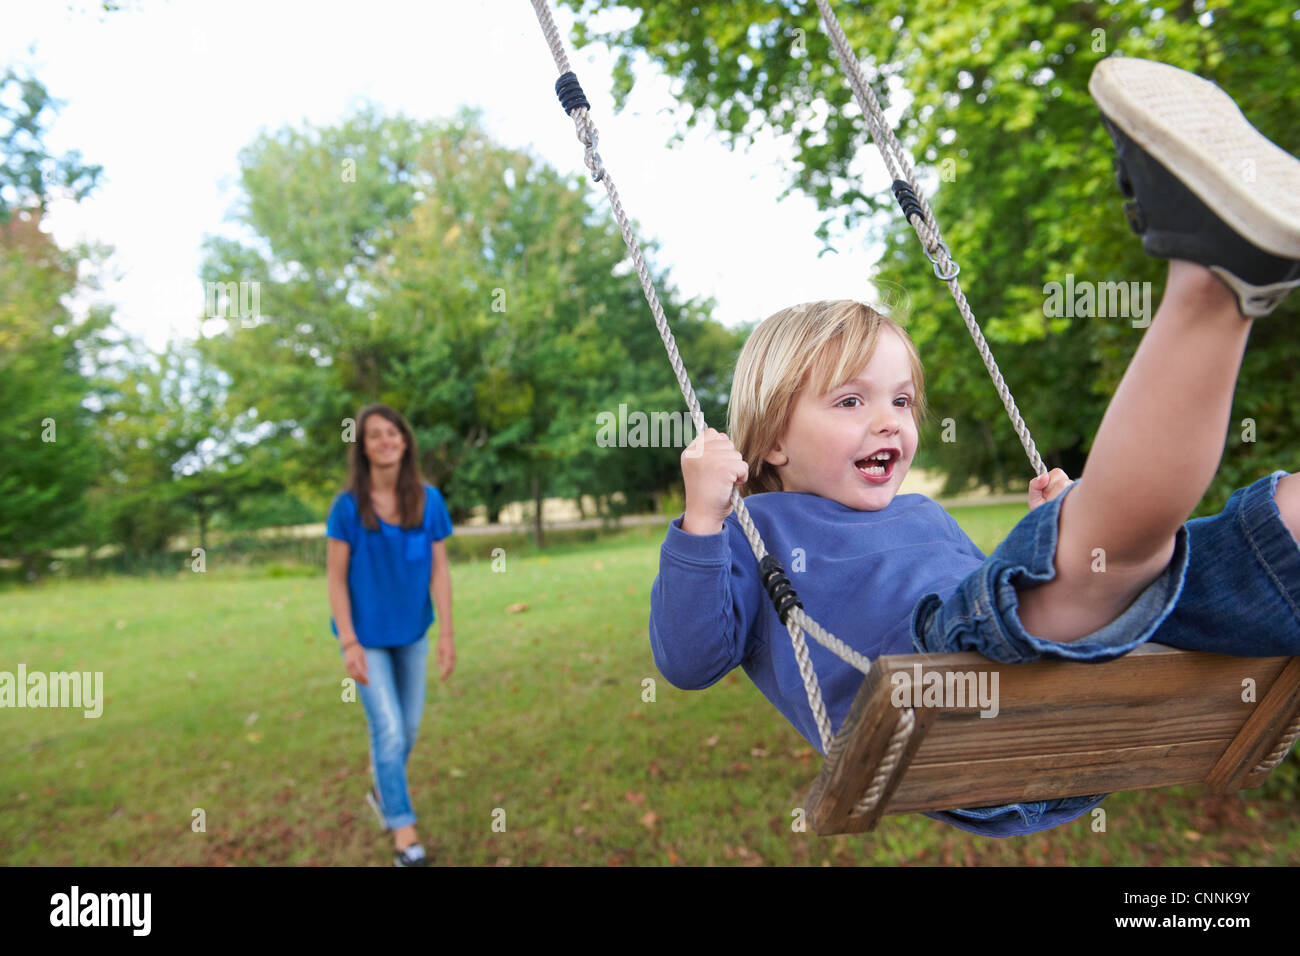 Boy playing on swing in backyard - Stock Image